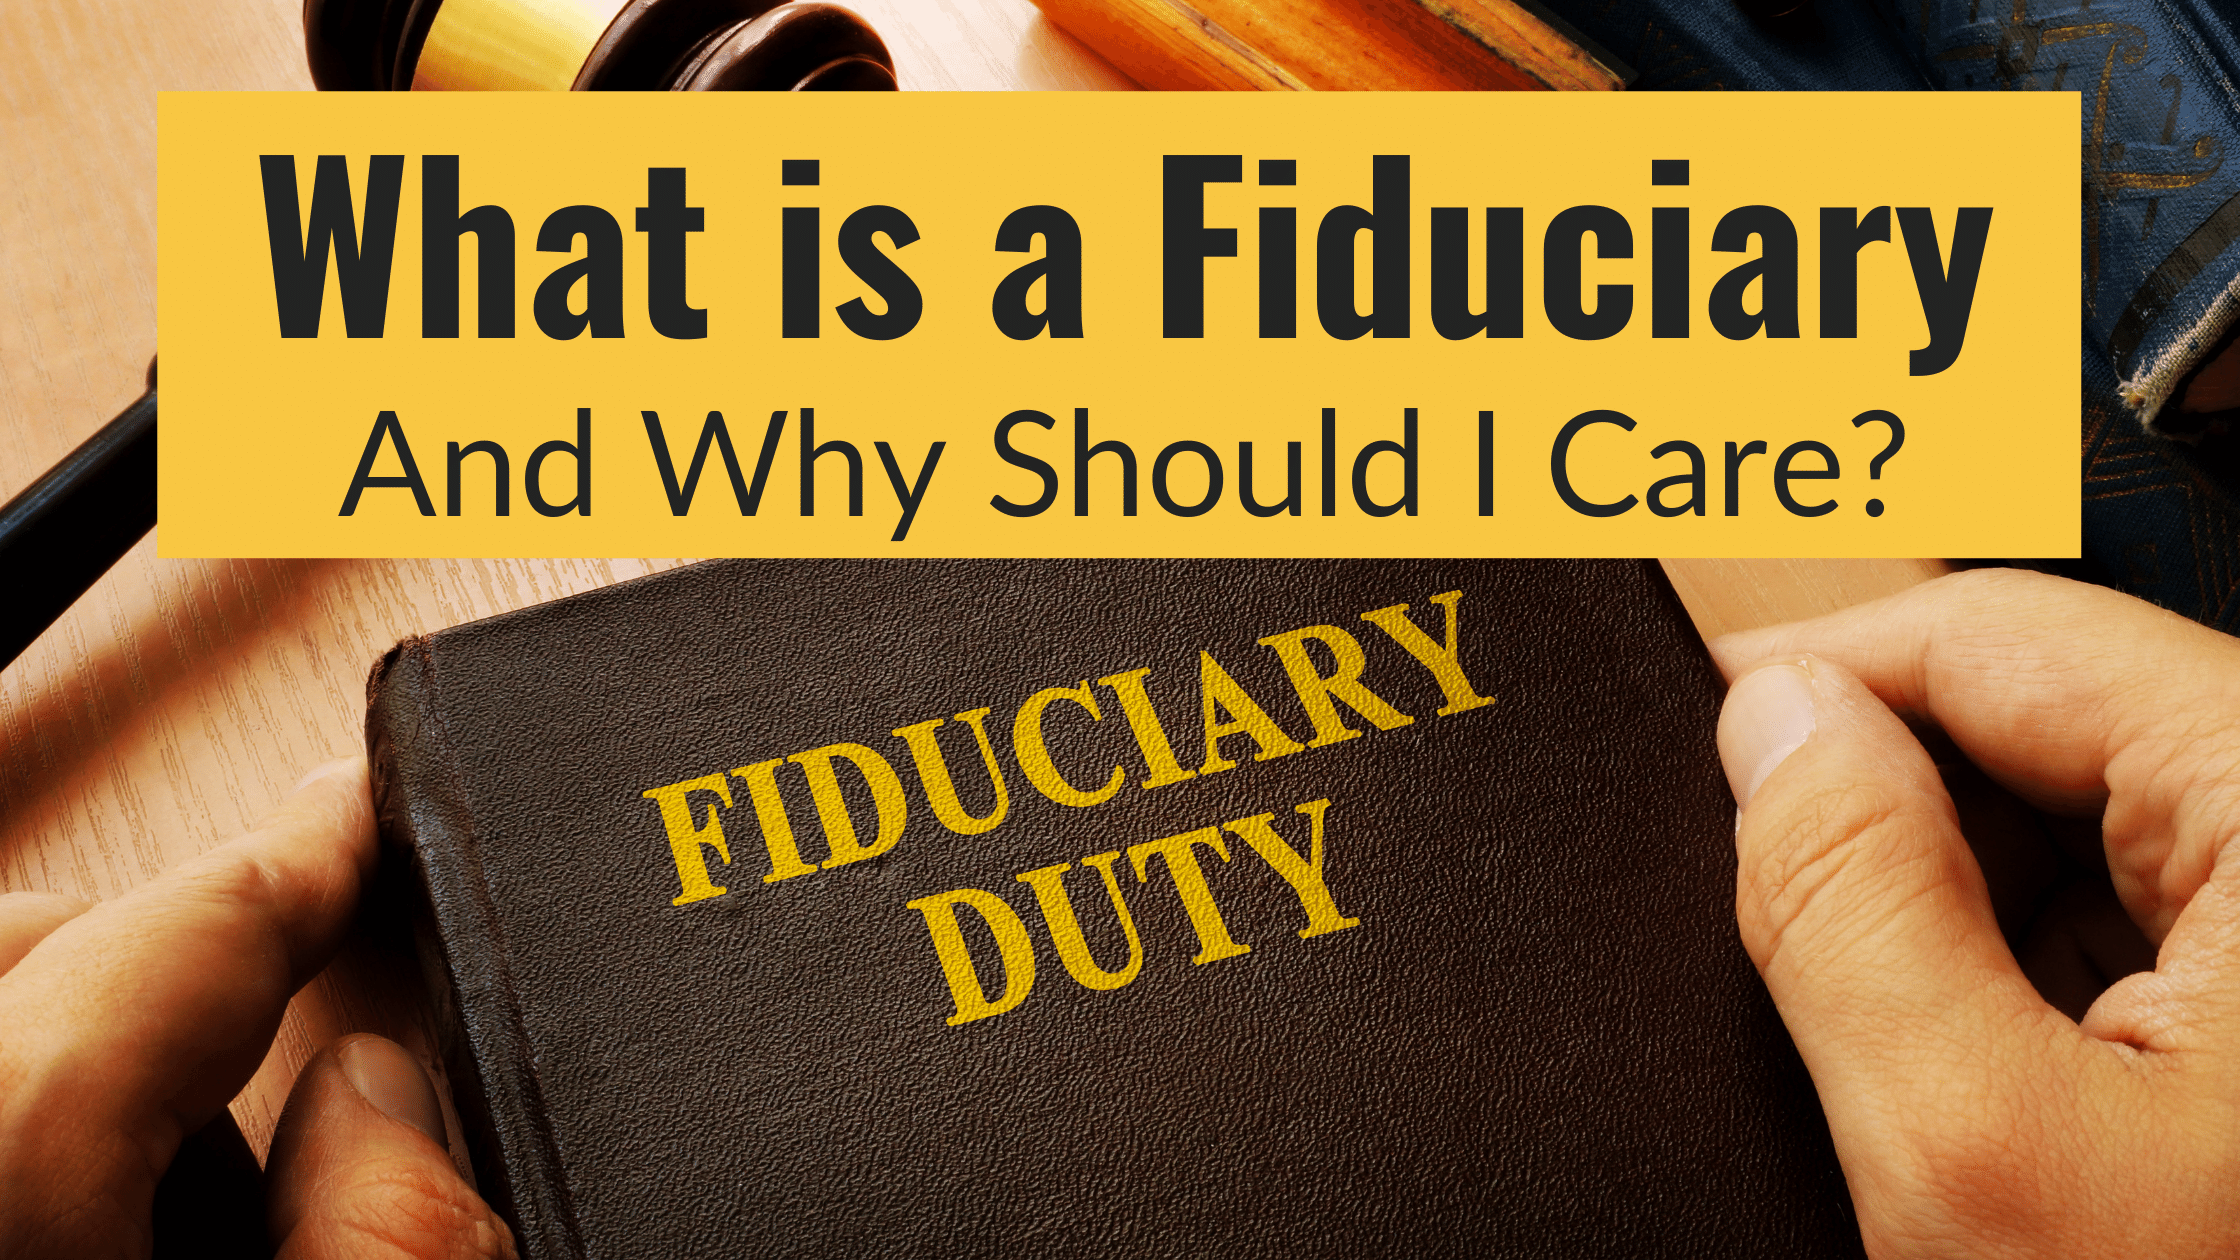 What is a Fiduciary and Why Should I Care?